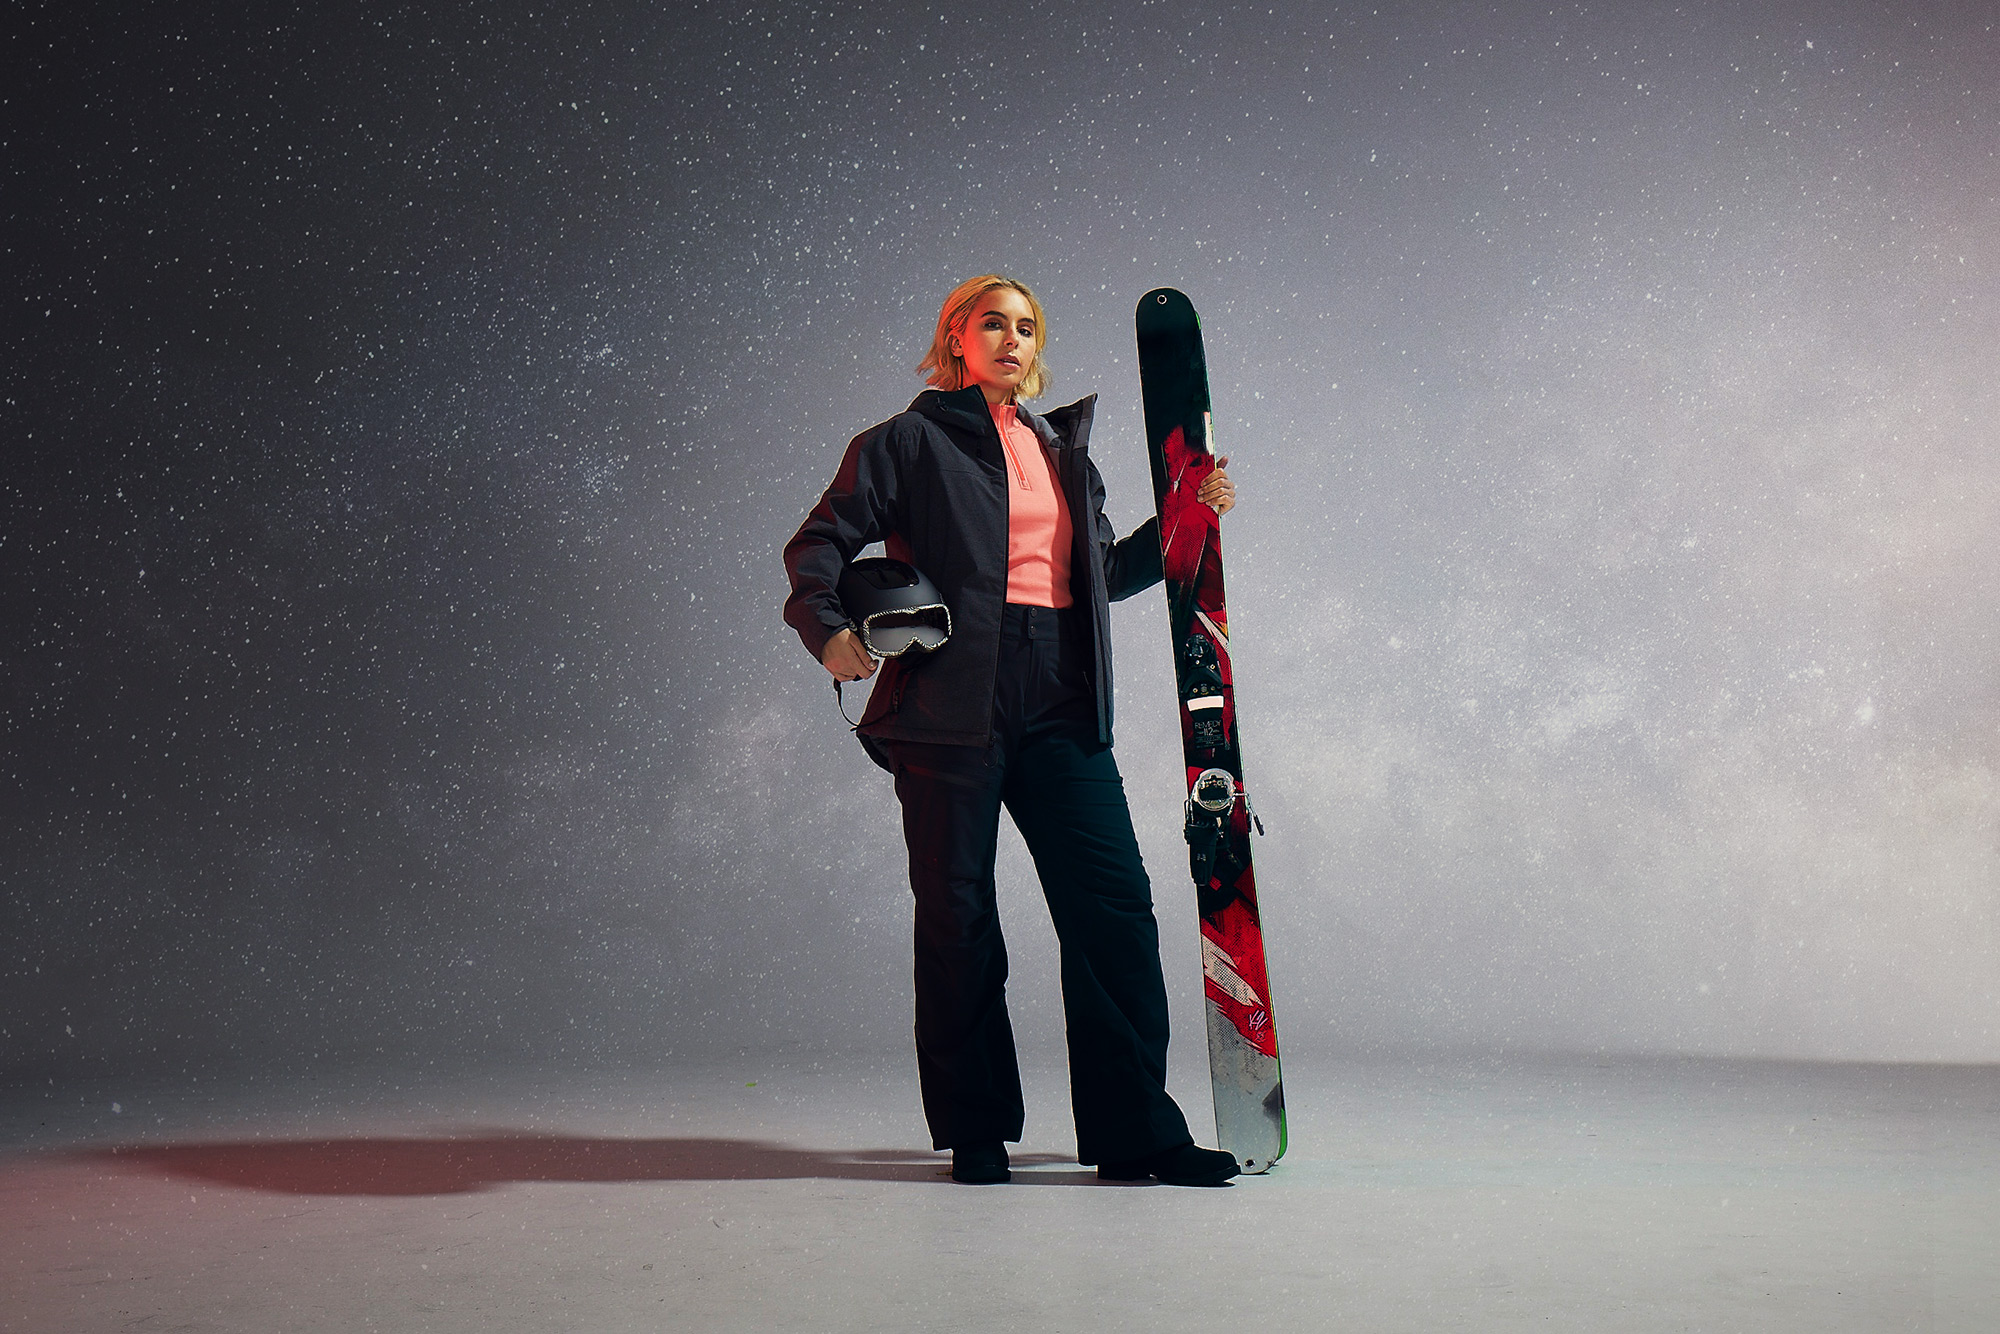 Womens_Full_Ski_Hero_01_13370_s